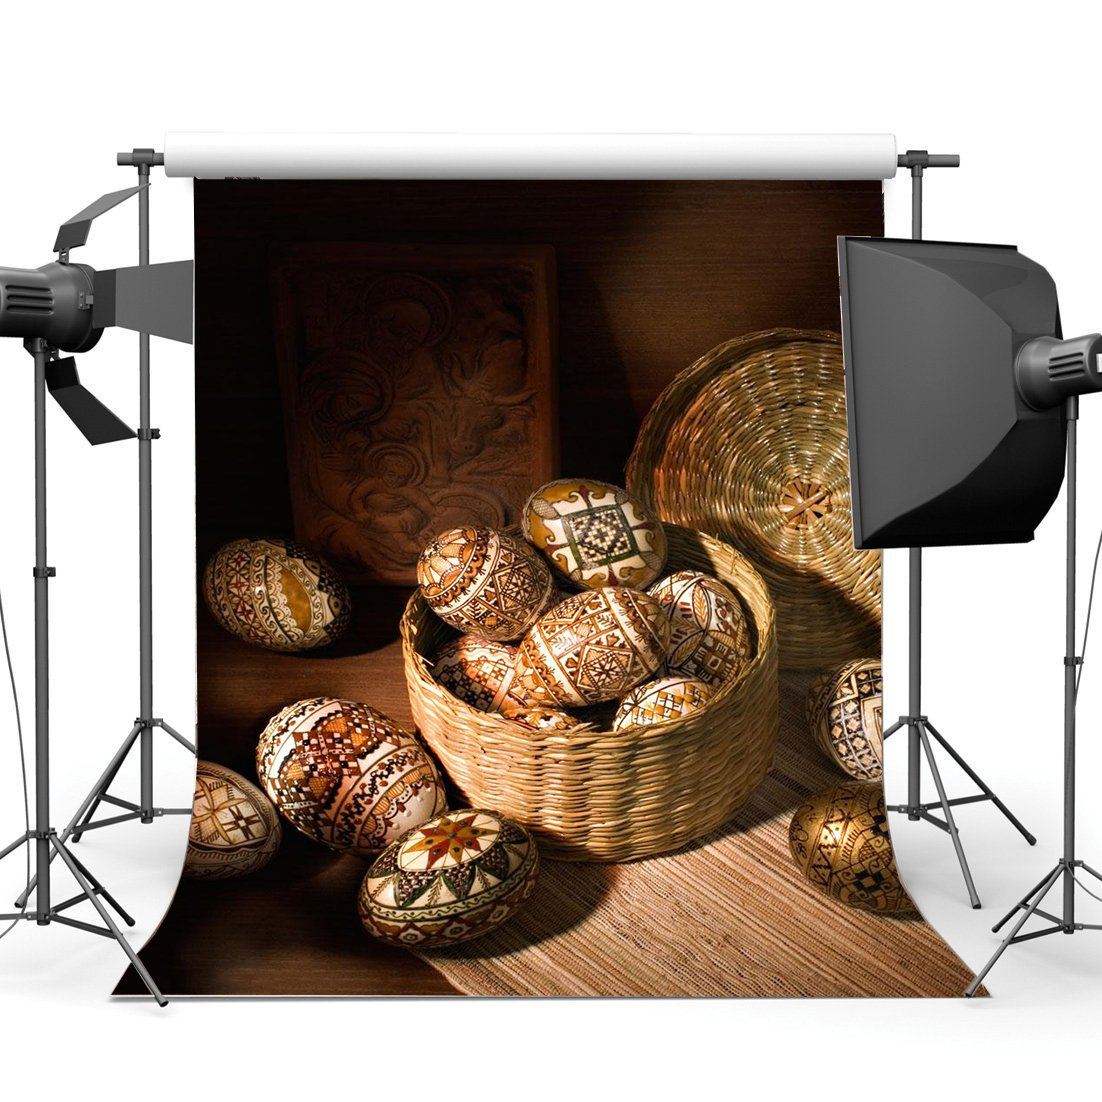 Happy Easter Eggs Backdrop Gloomy Straw Hat Basket Carving Frame Old Barn Interior Spring Frohe Ostern Photography Background-in Photo Studio Accessories from Consumer Electronics